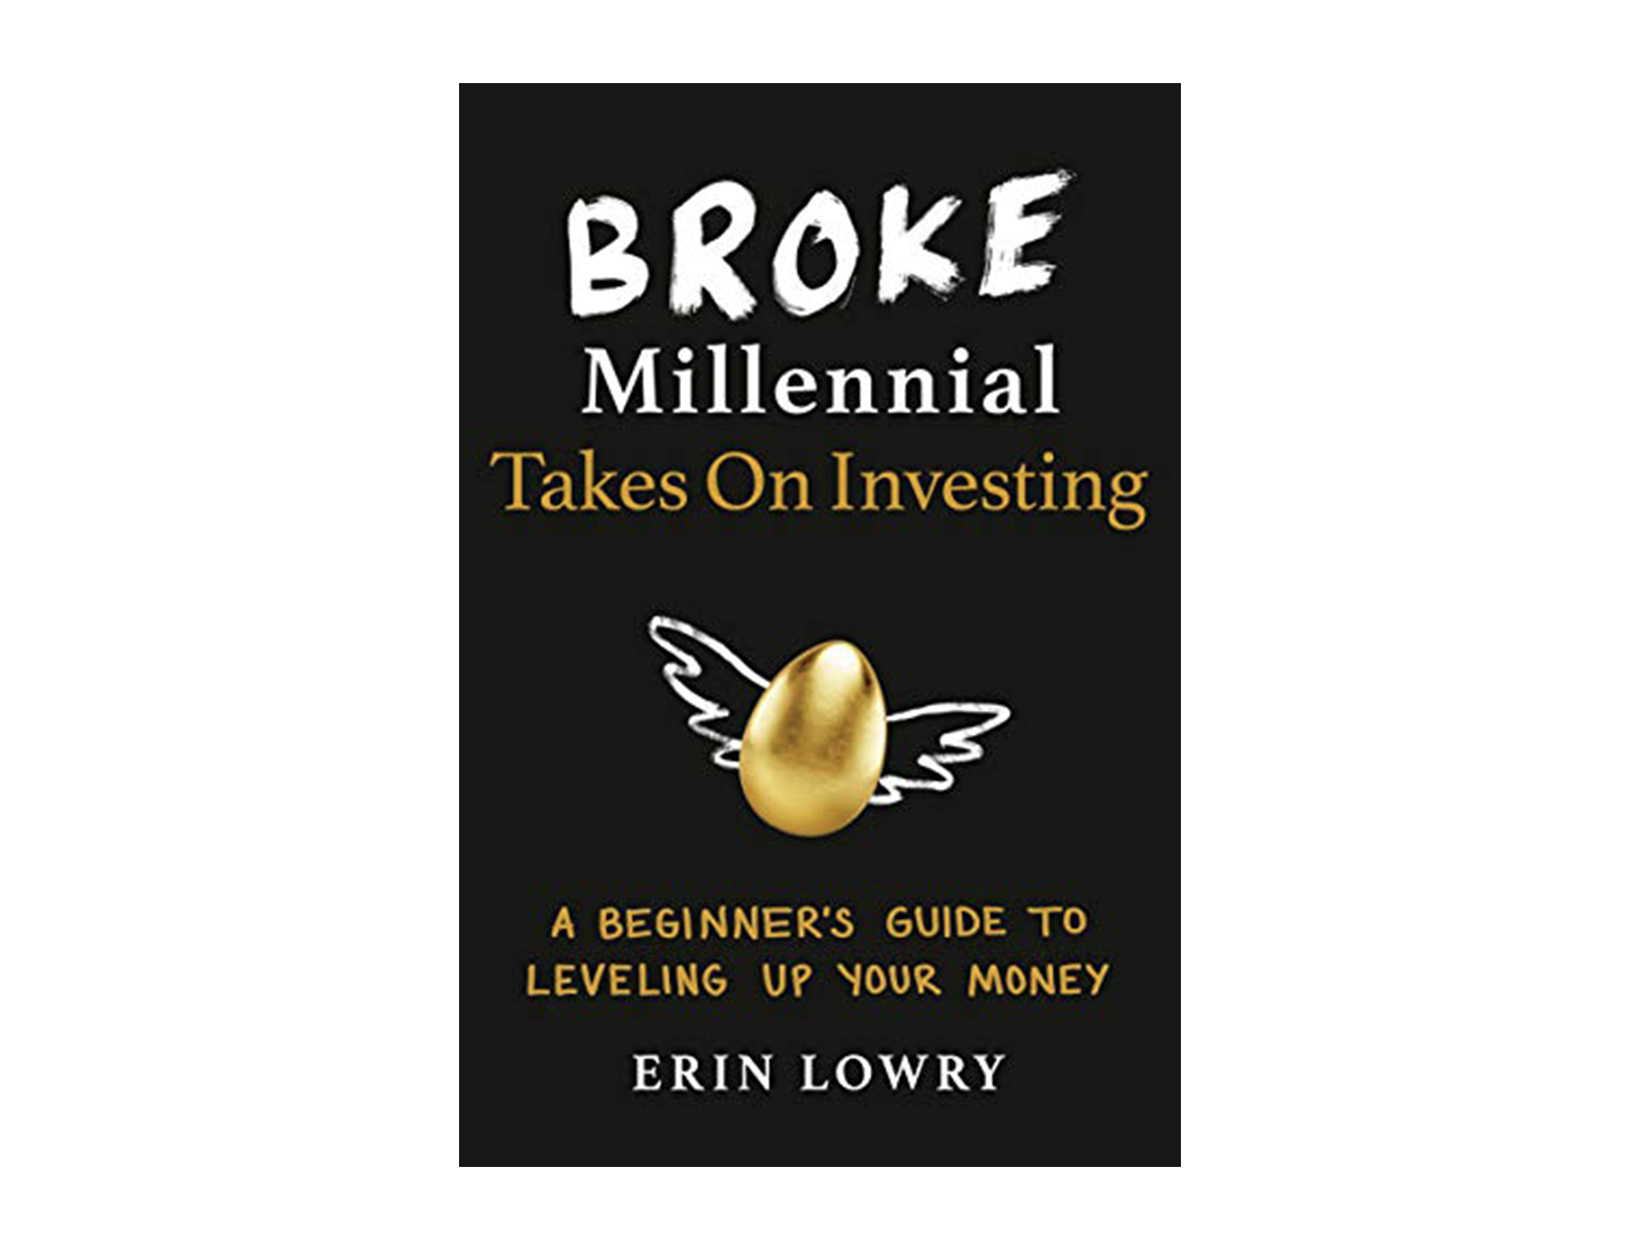 <em>Broke Millennial Takes On Investing</em> by Erin Lowry